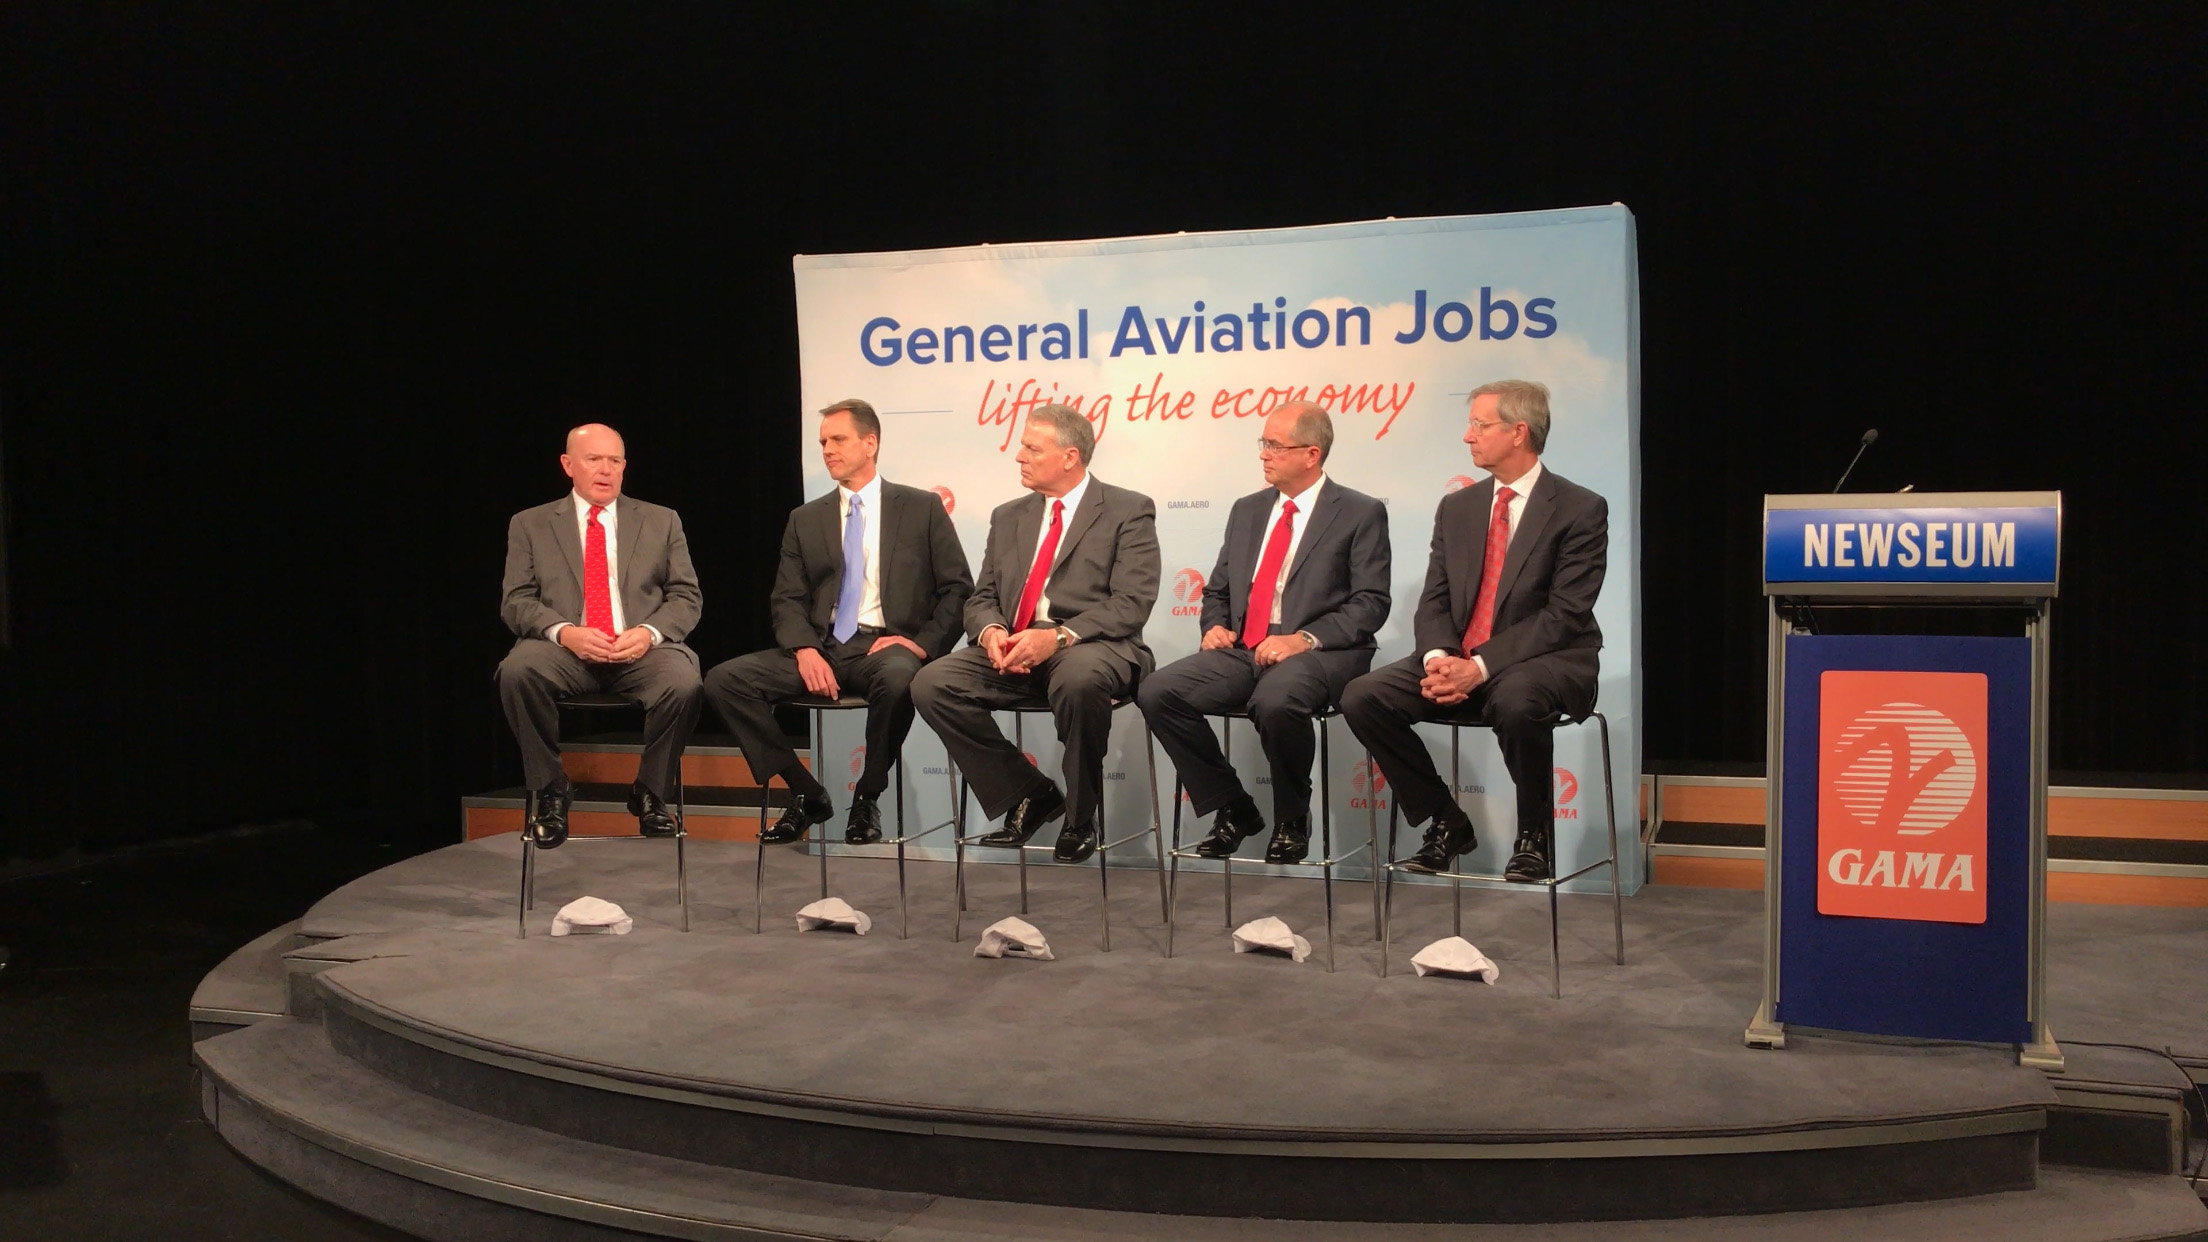 GAMA President and CEO Pete Bunce, center, was flanked by current, future, and past GAMA chairmen, including current Chairman Simon Caldecott, far left, the CEO of Piper Aircraft, as the group discussed the aviation market Feb. 22.